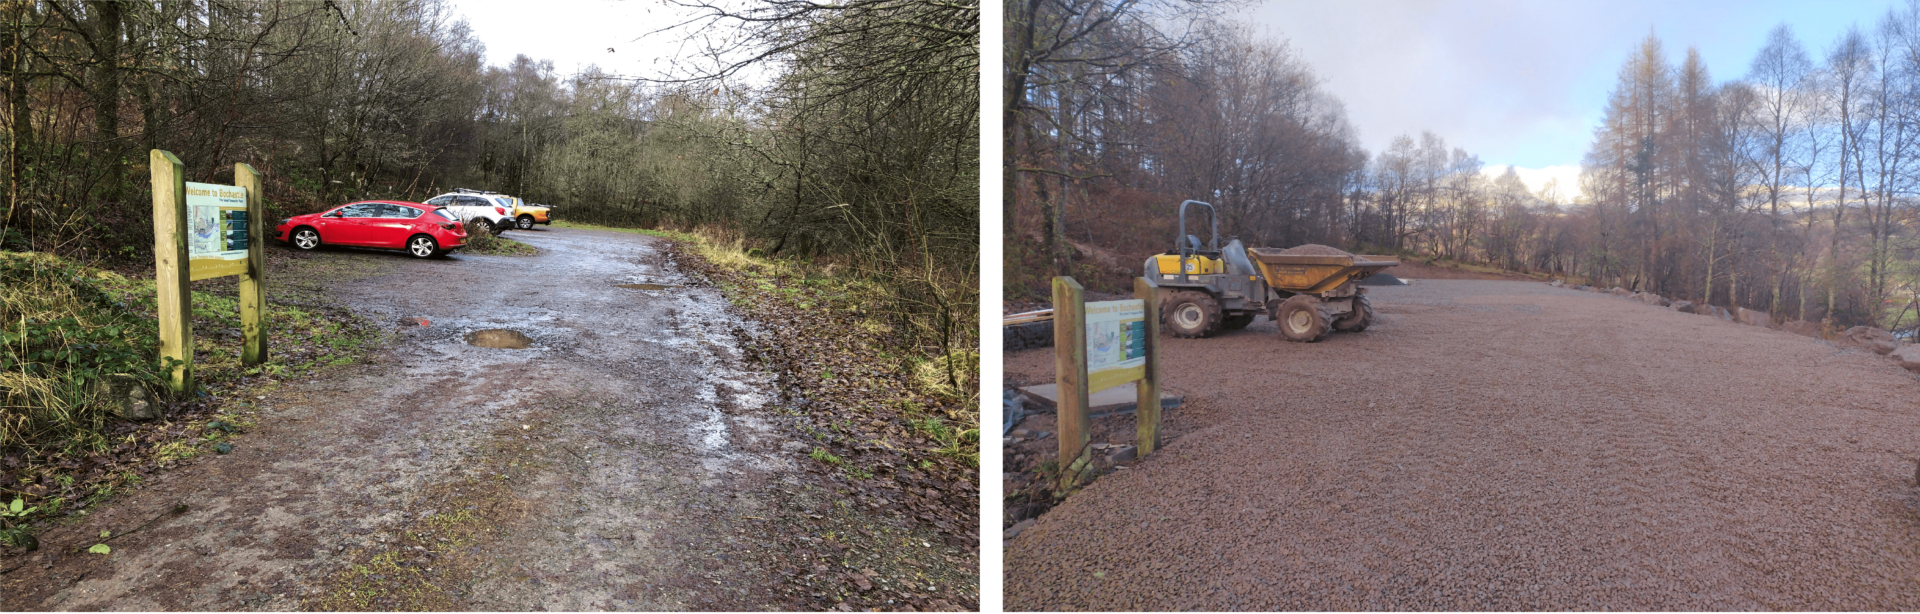 Before and after photos showing the expansion of the car park